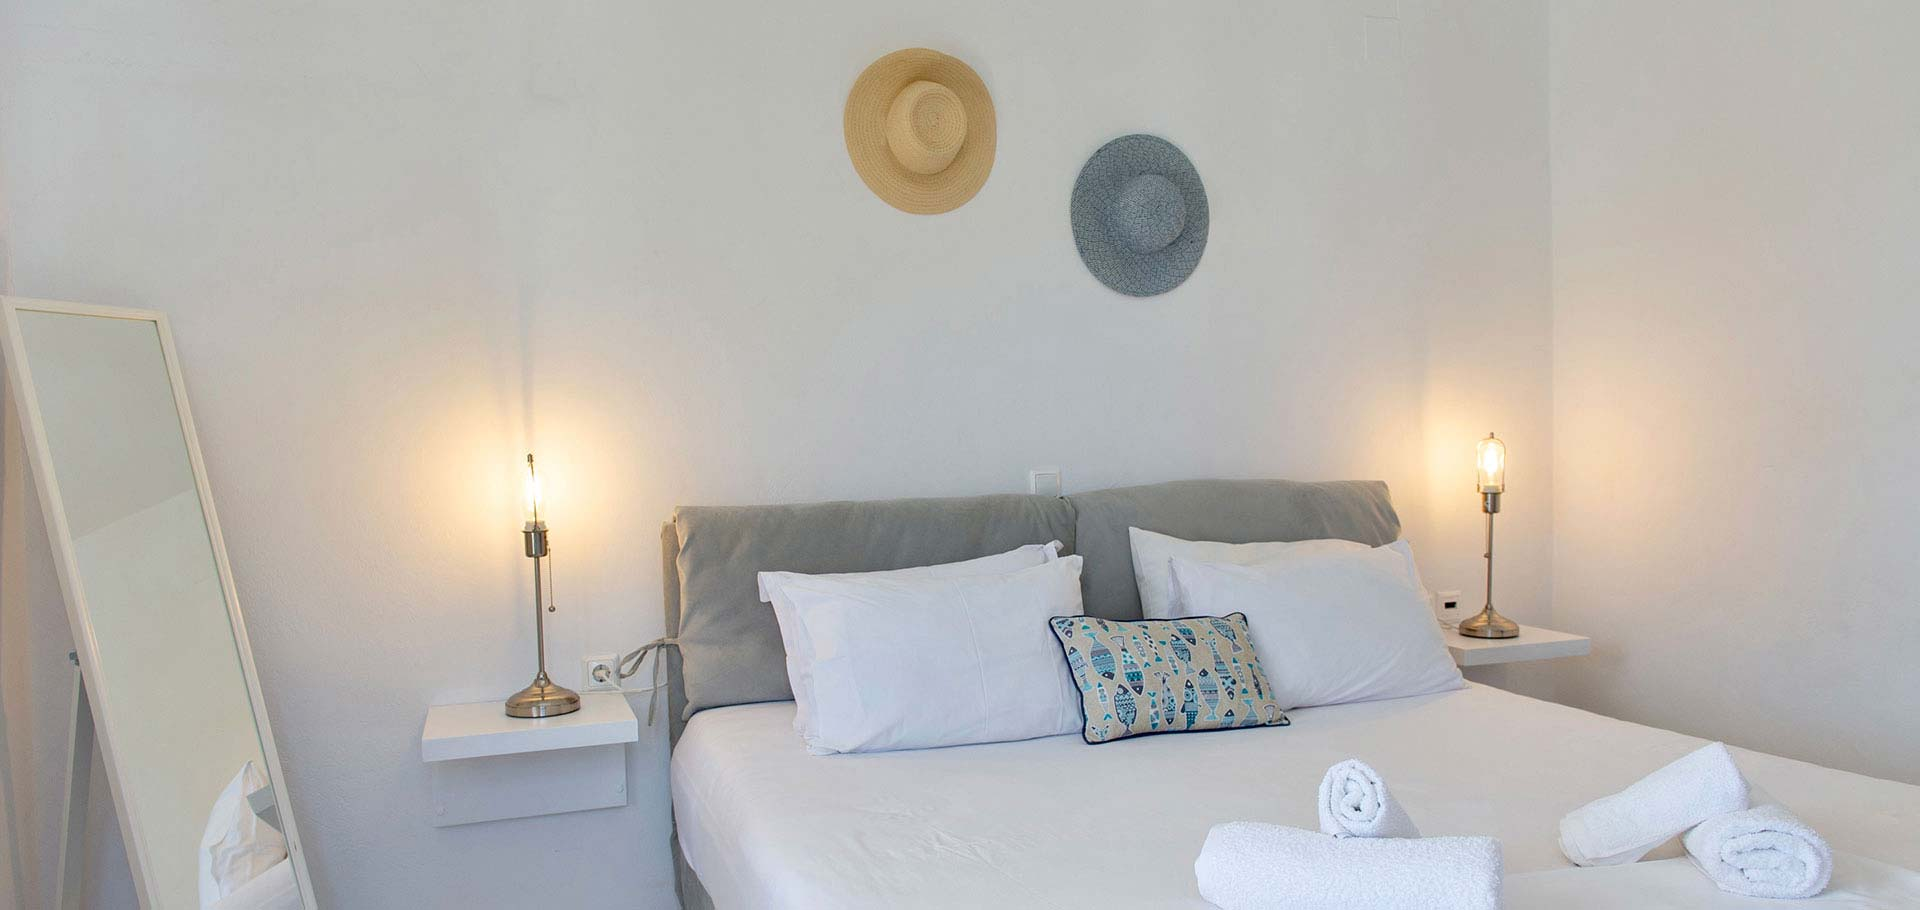 Rooms in Sifnos near the sea